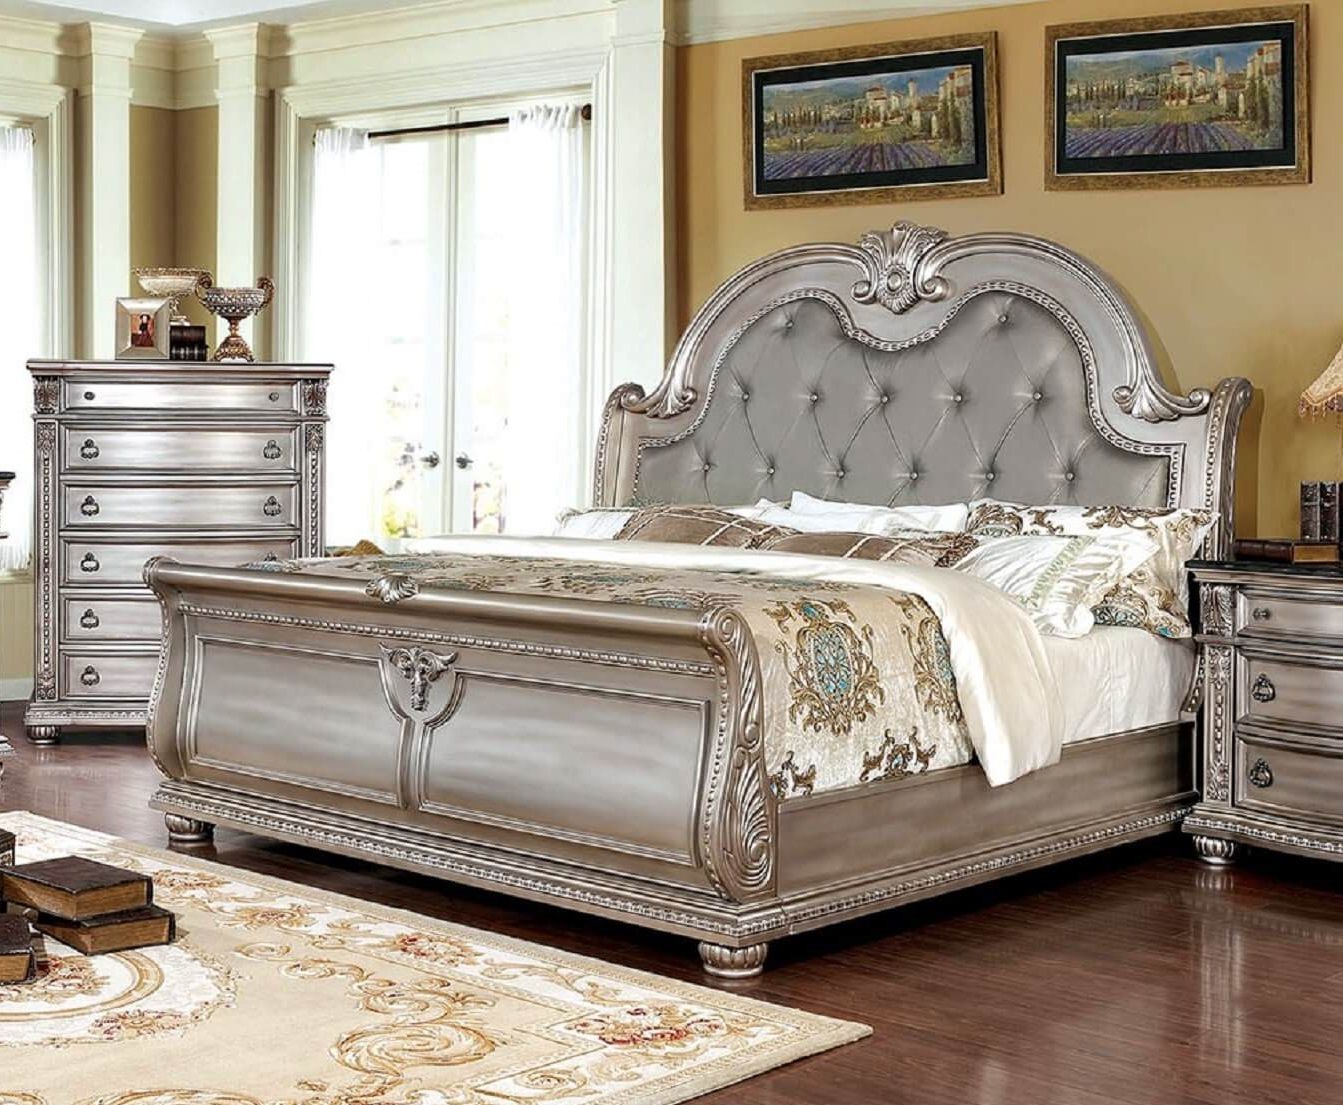 Bedroom Furniture Online Fromberg Sleigh Bed Champagne Finish Foa Cm7670cpn